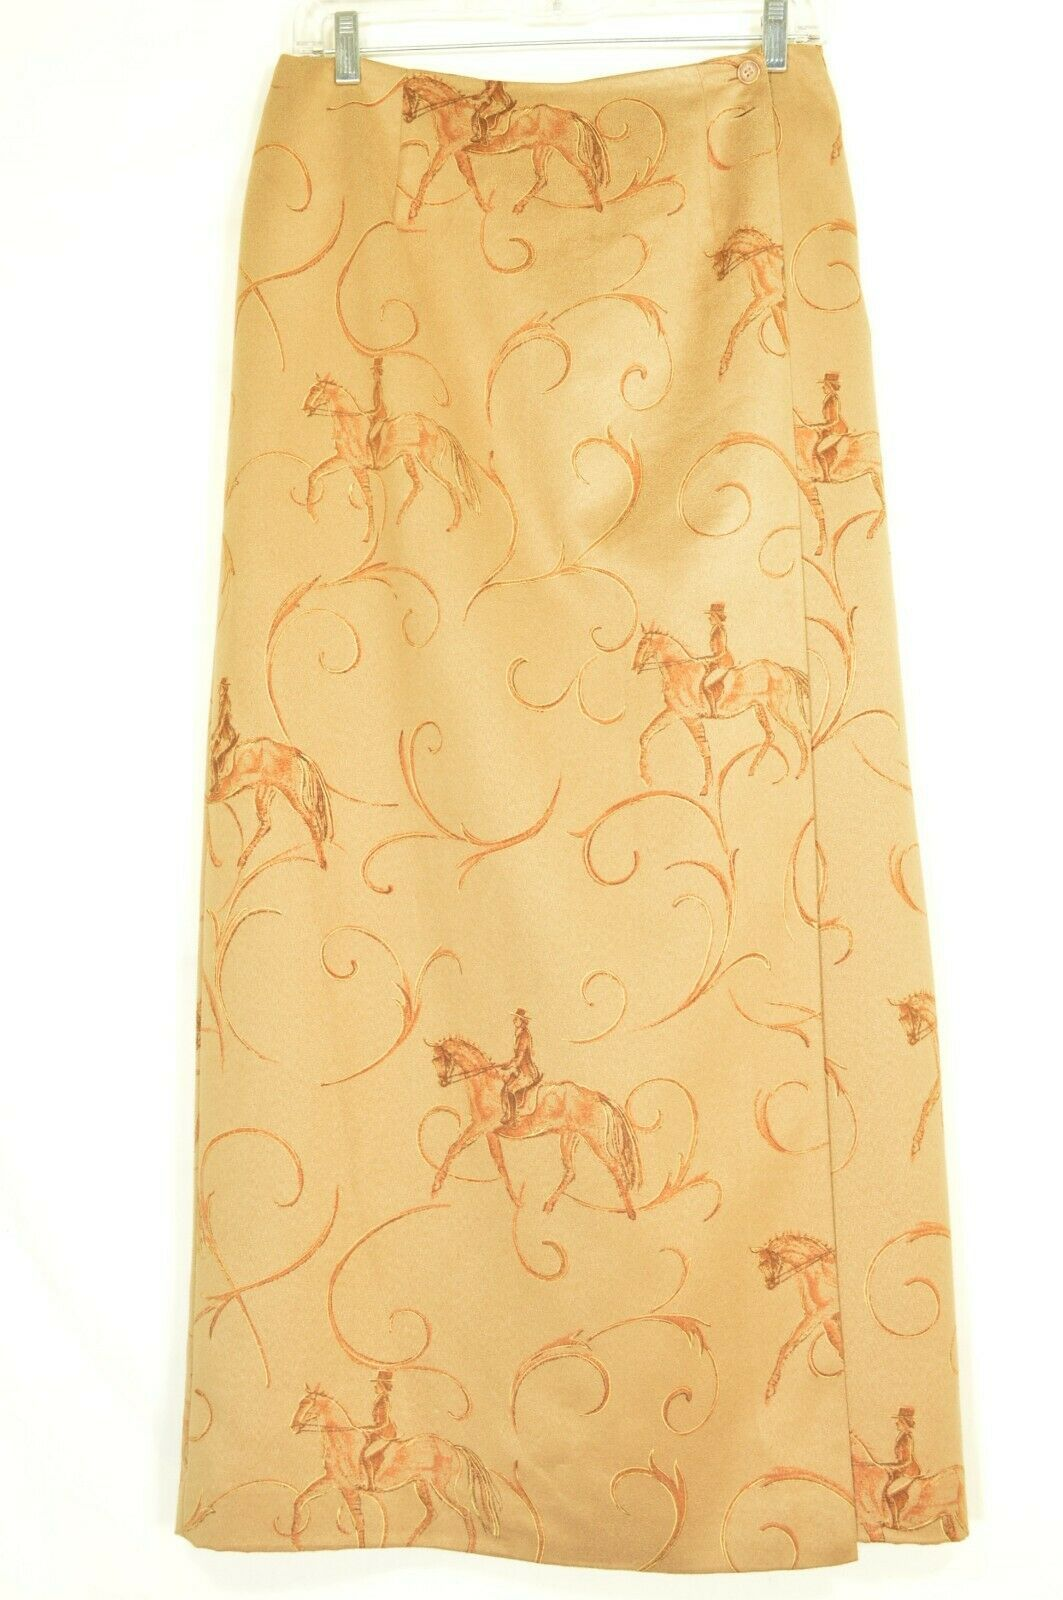 1 Talbots skirt 8 tan long wrap equestrian tonal design of riders faux suede